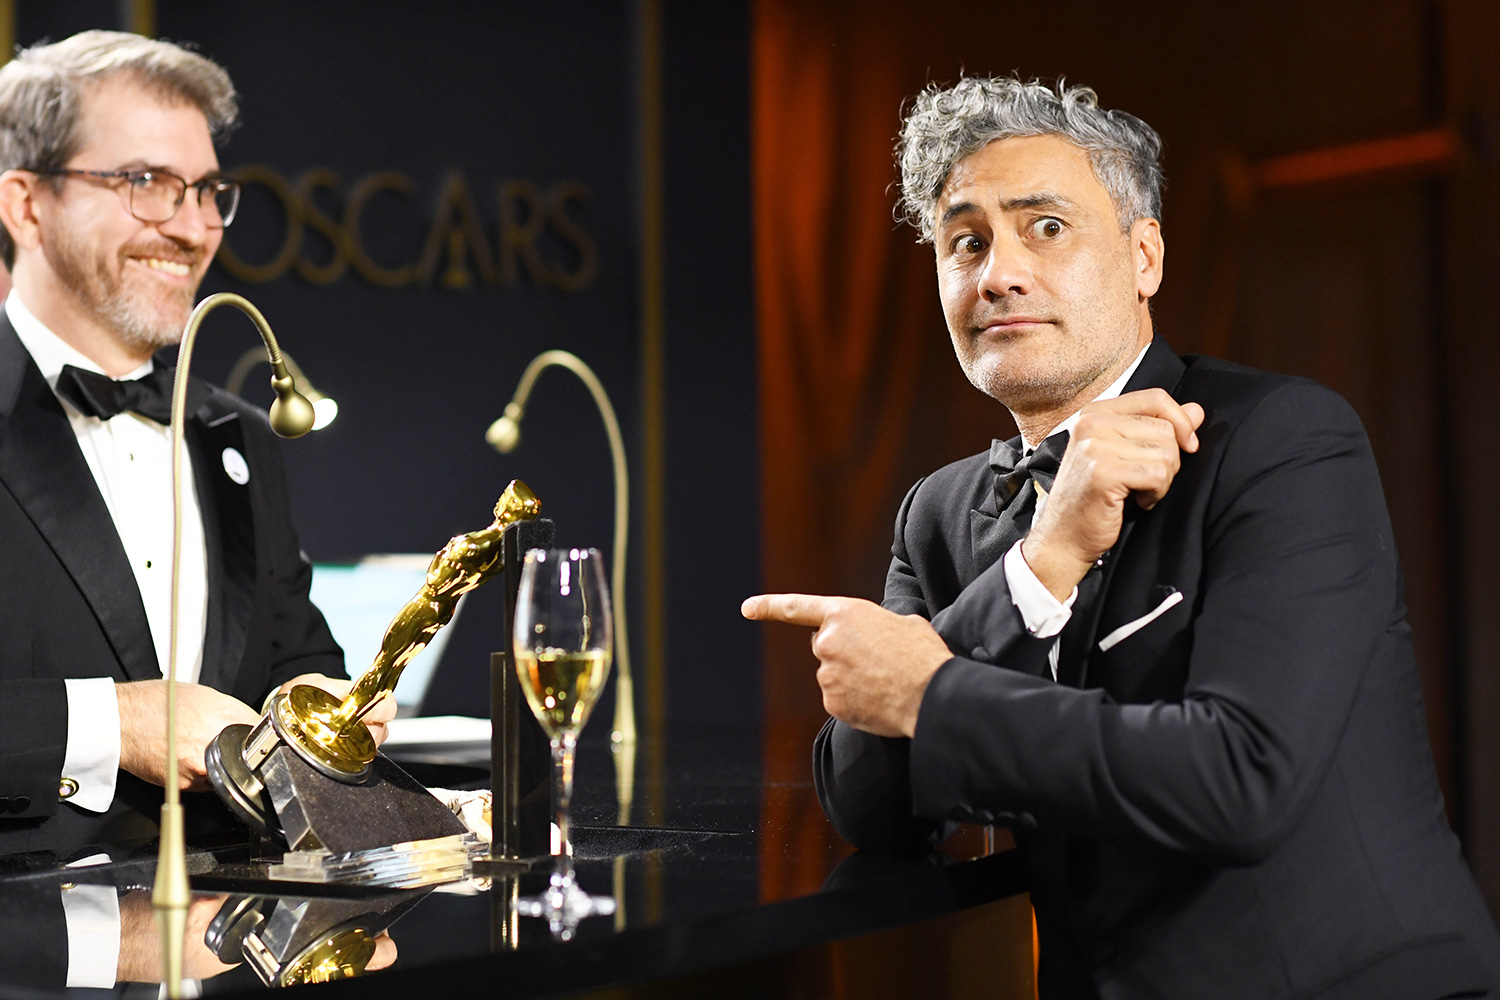 """Taika Waititi (R) waits as his award for Best Adapted Screenplay for """"Jojo Rabbit"""" is engraved as he attends the 92nd Oscars Governors Ball at the Hollywood & Highland Center in Hollywood, California on February 9, 2020"""